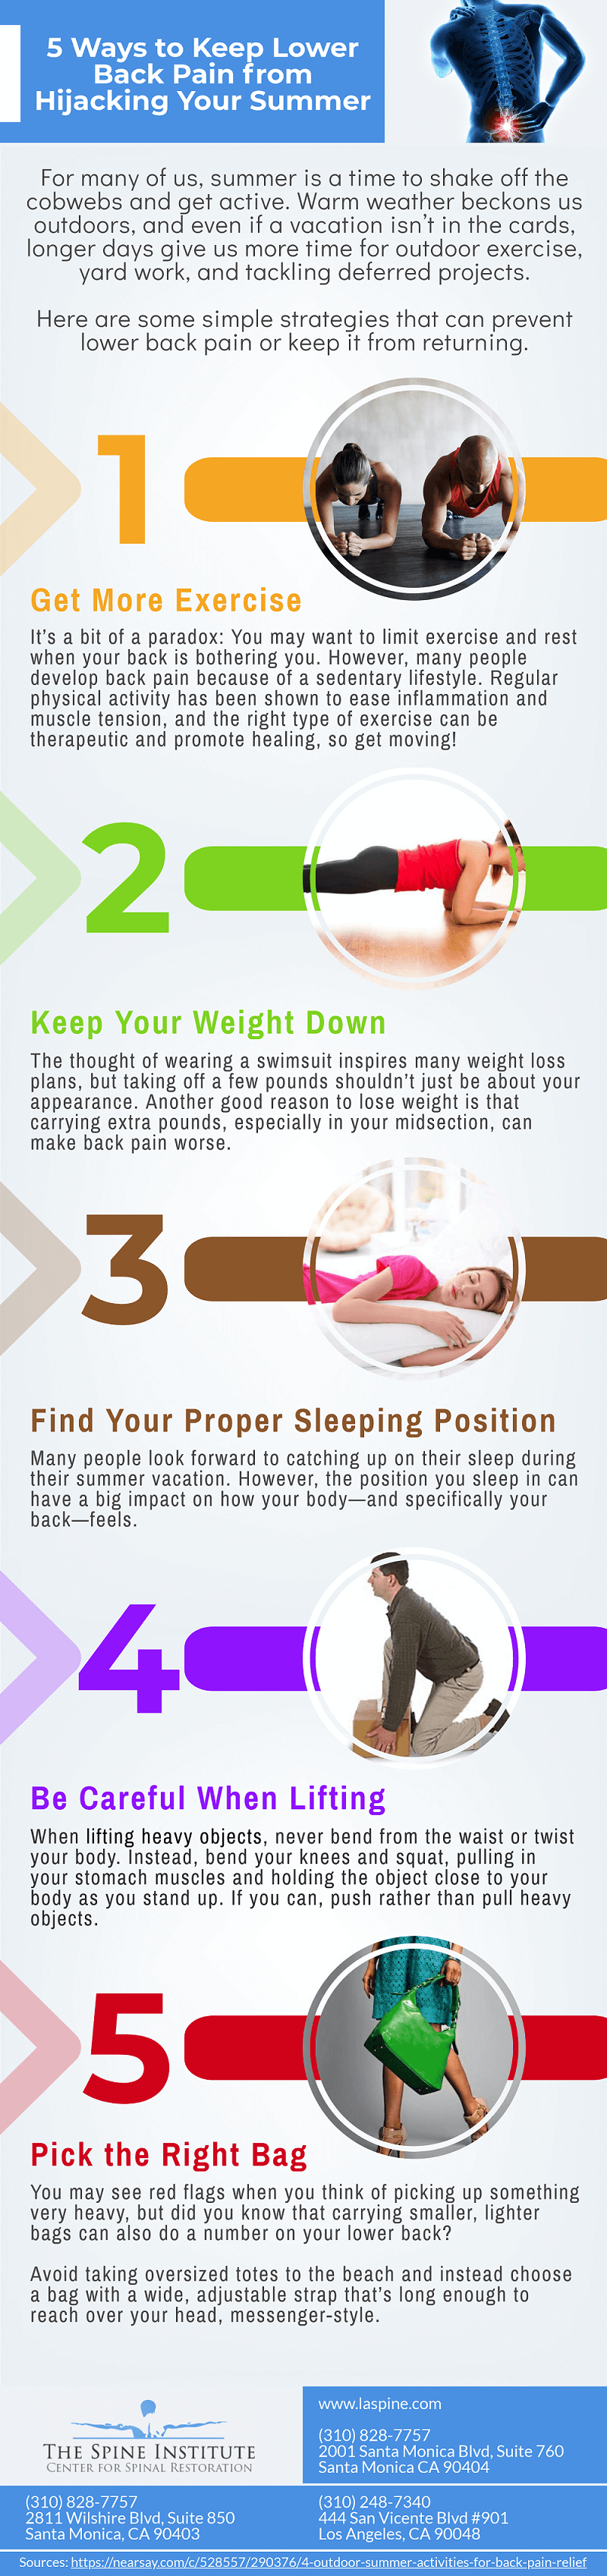 5 Ways to Stop Lower Back Pain in the Summer [Infographic]